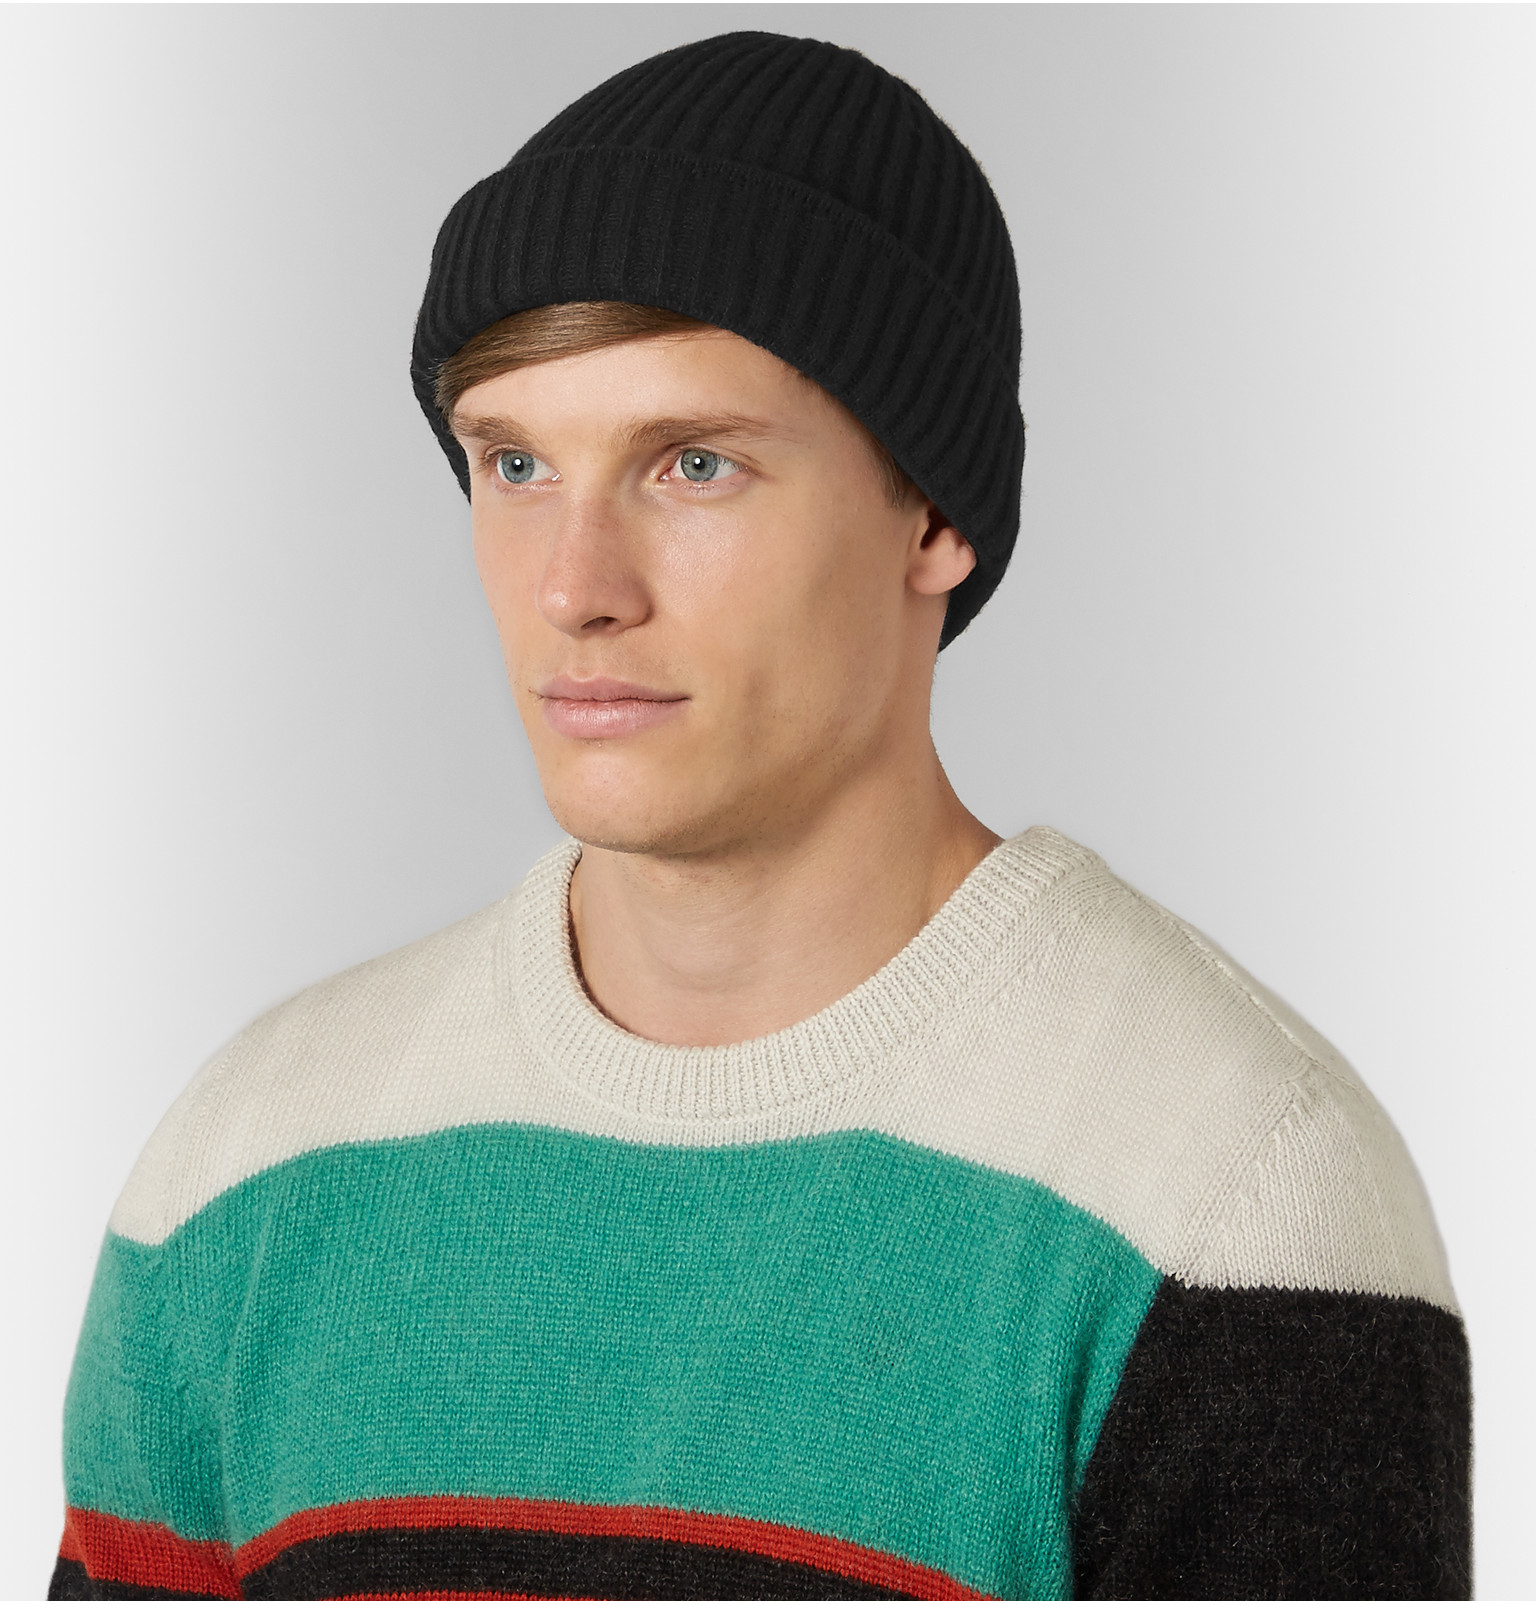 Acne Studios Ribbed Wool Beanie in Black for Men - Lyst 4ebb3c9479c